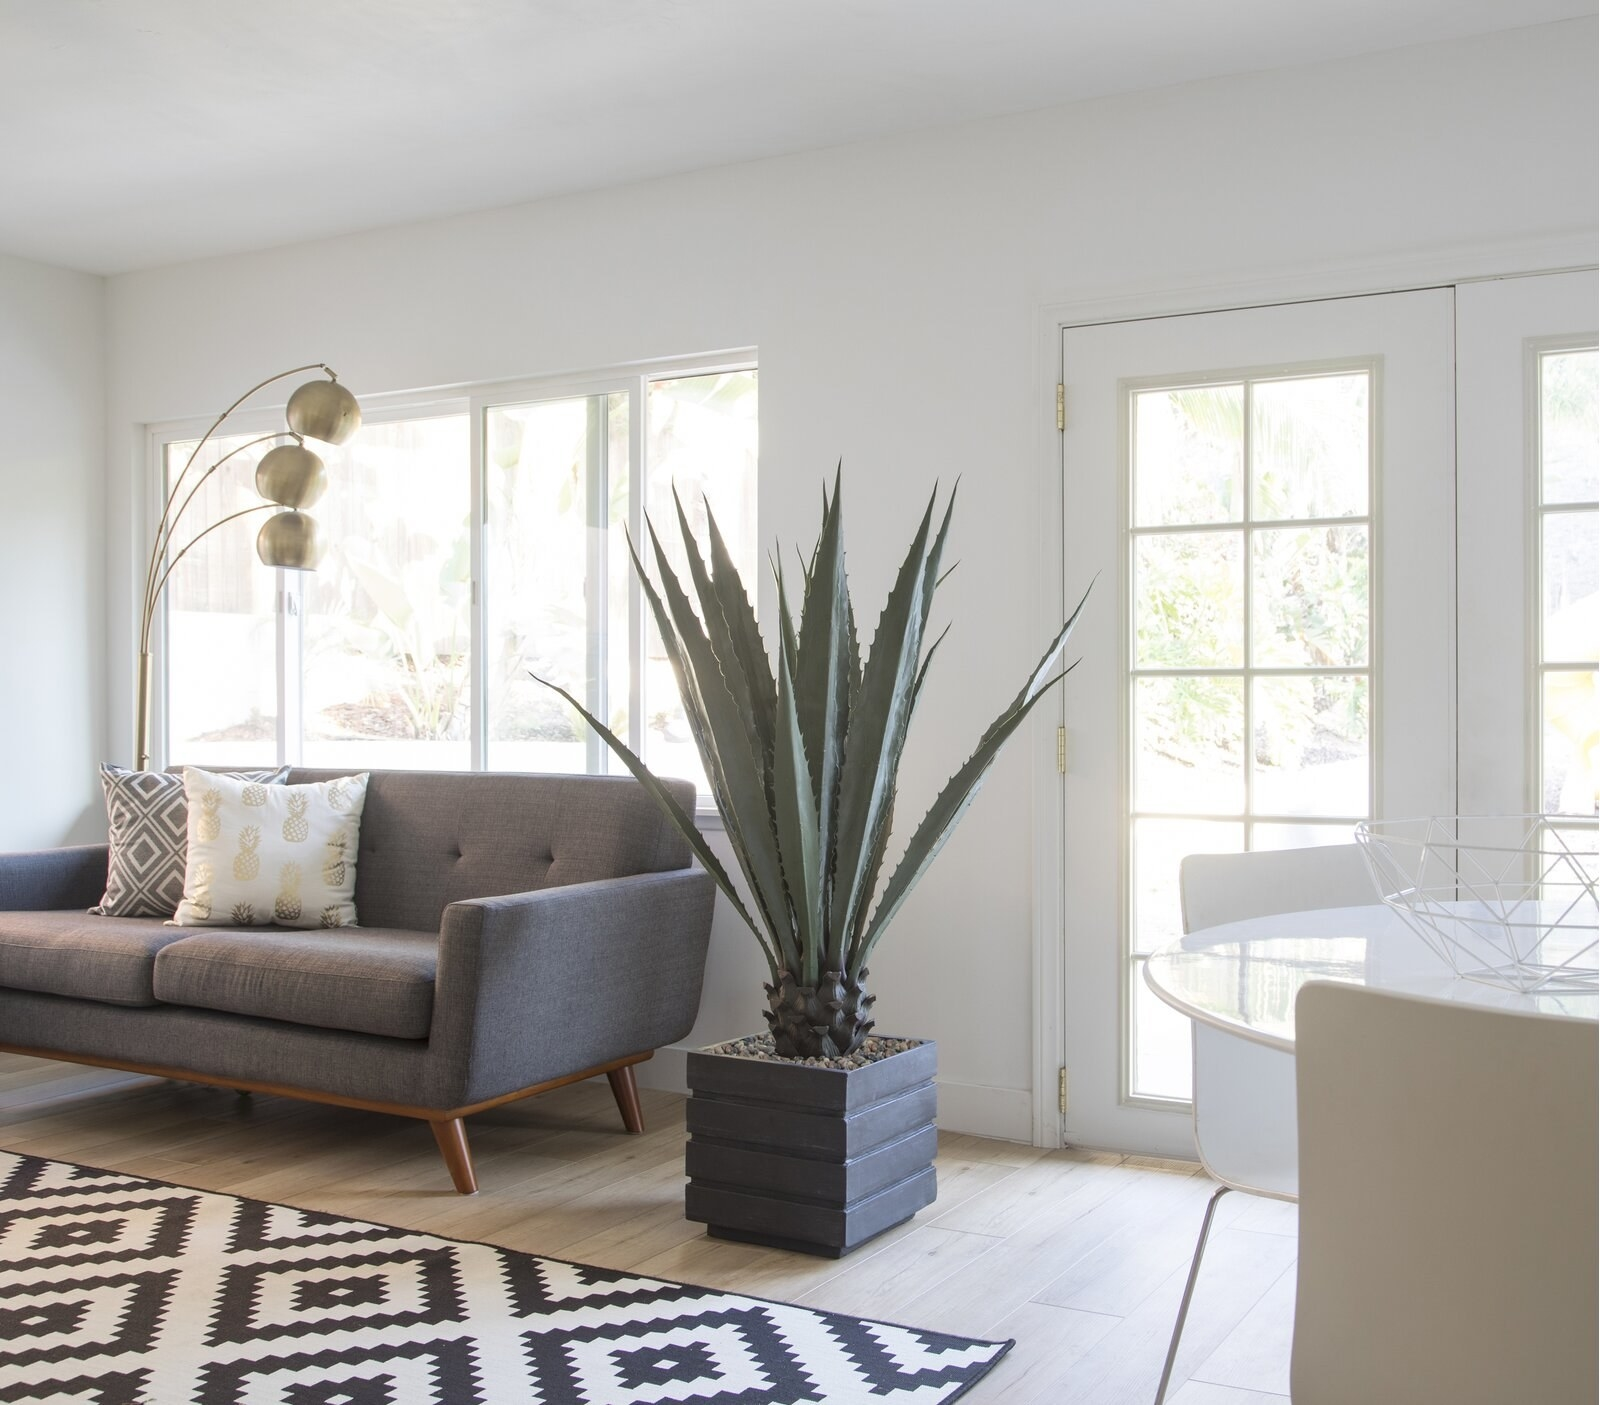 Large agave plant in living room displayed in cube planter